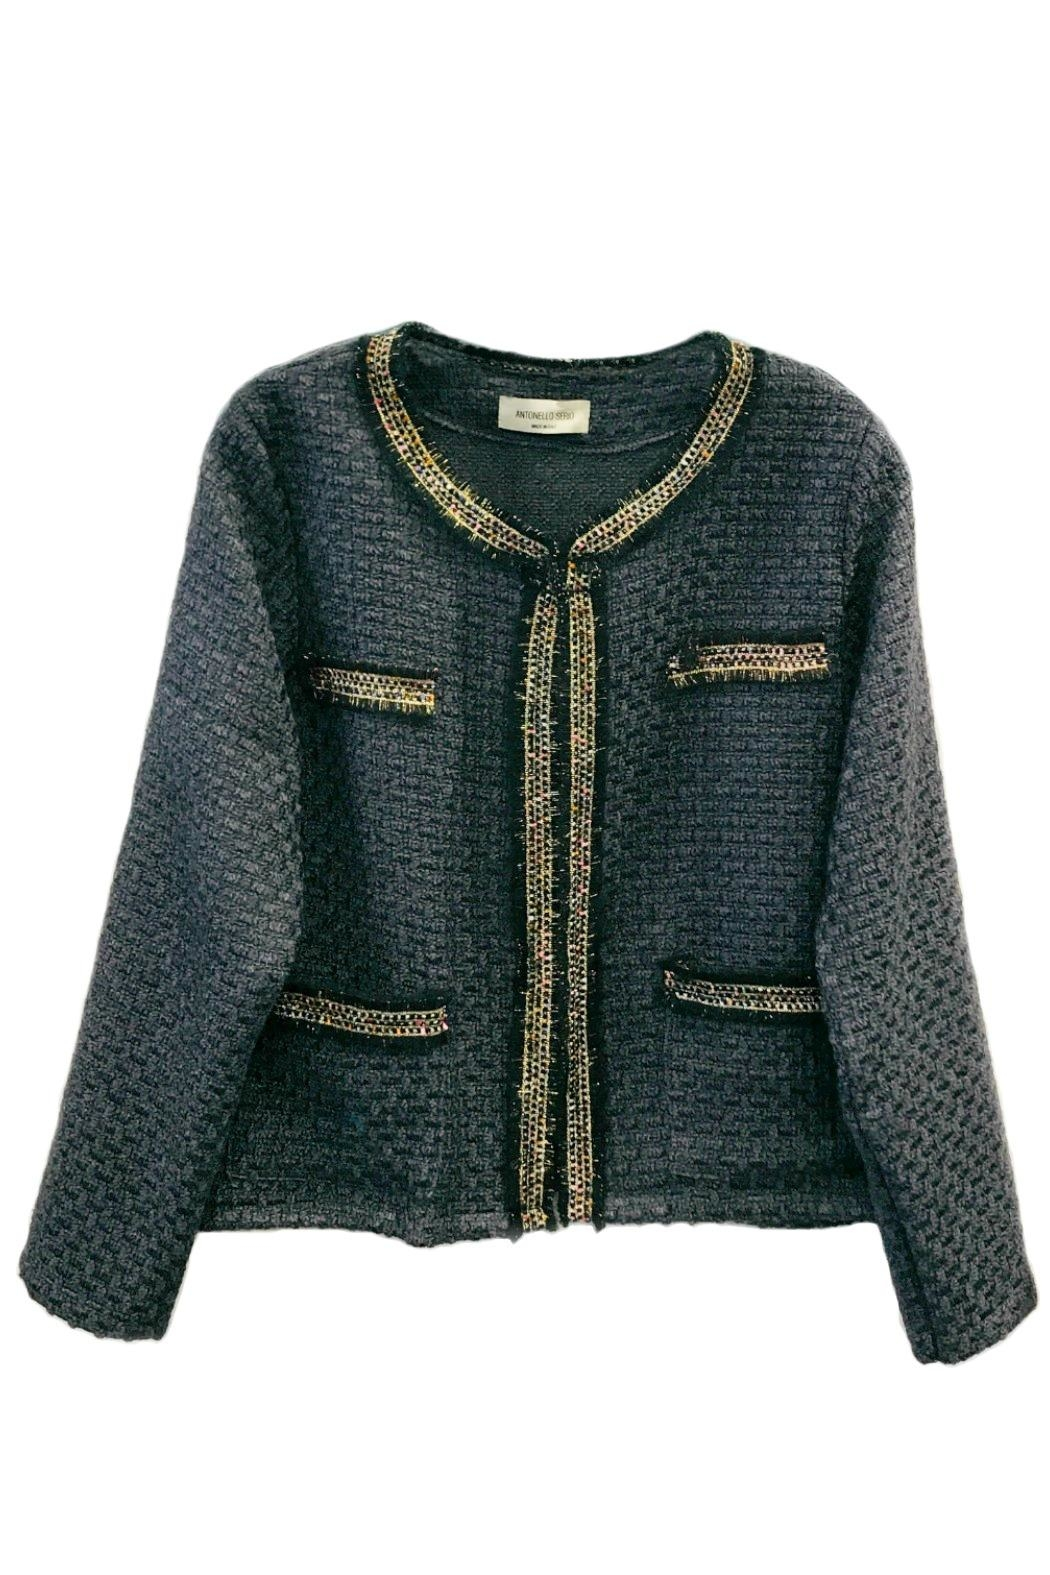 ANTONELLO SERIO Crop Tweed Blazer - Front Cropped Image